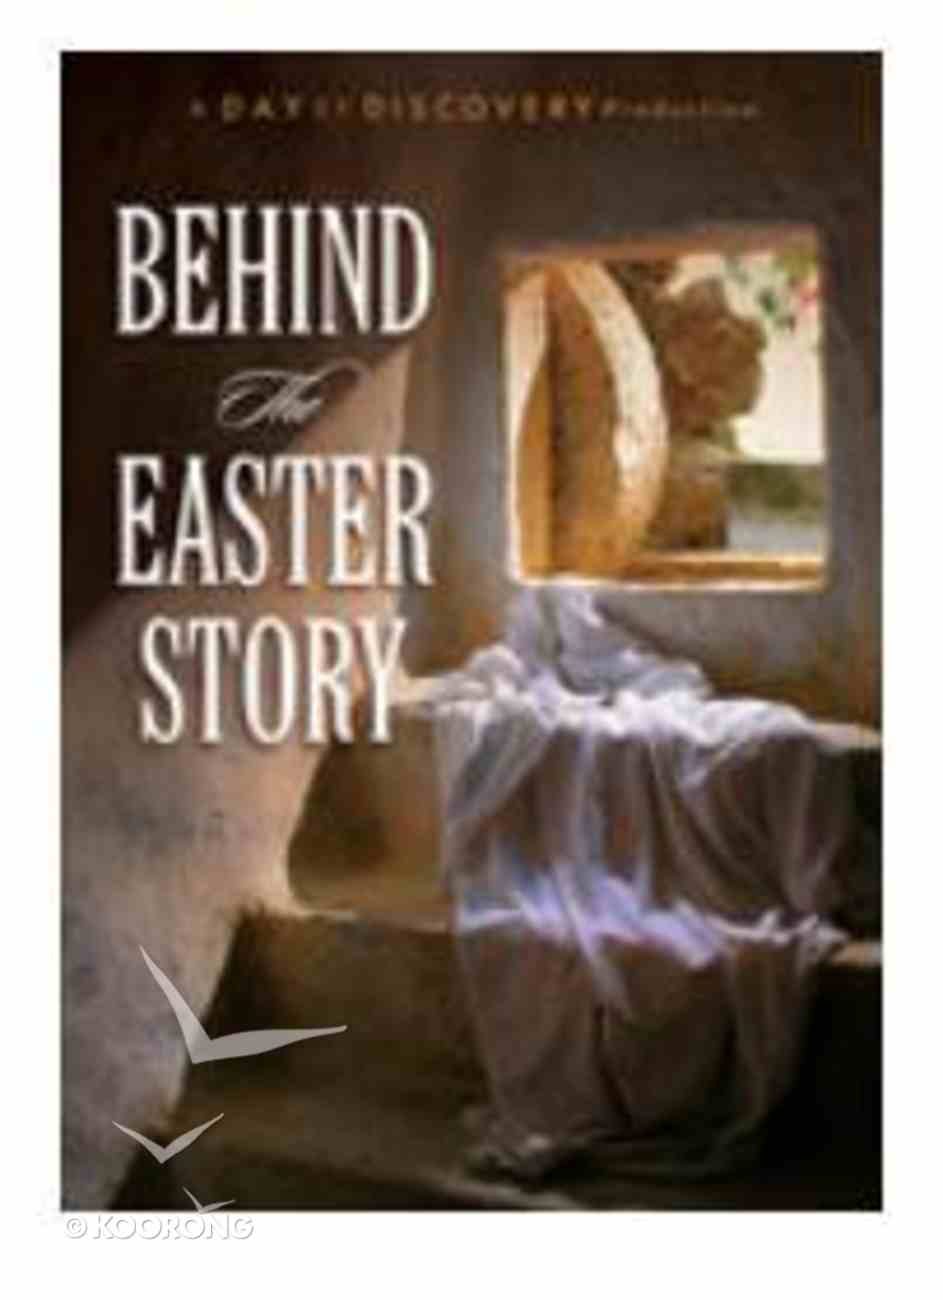 Behind the Easter Story DVD